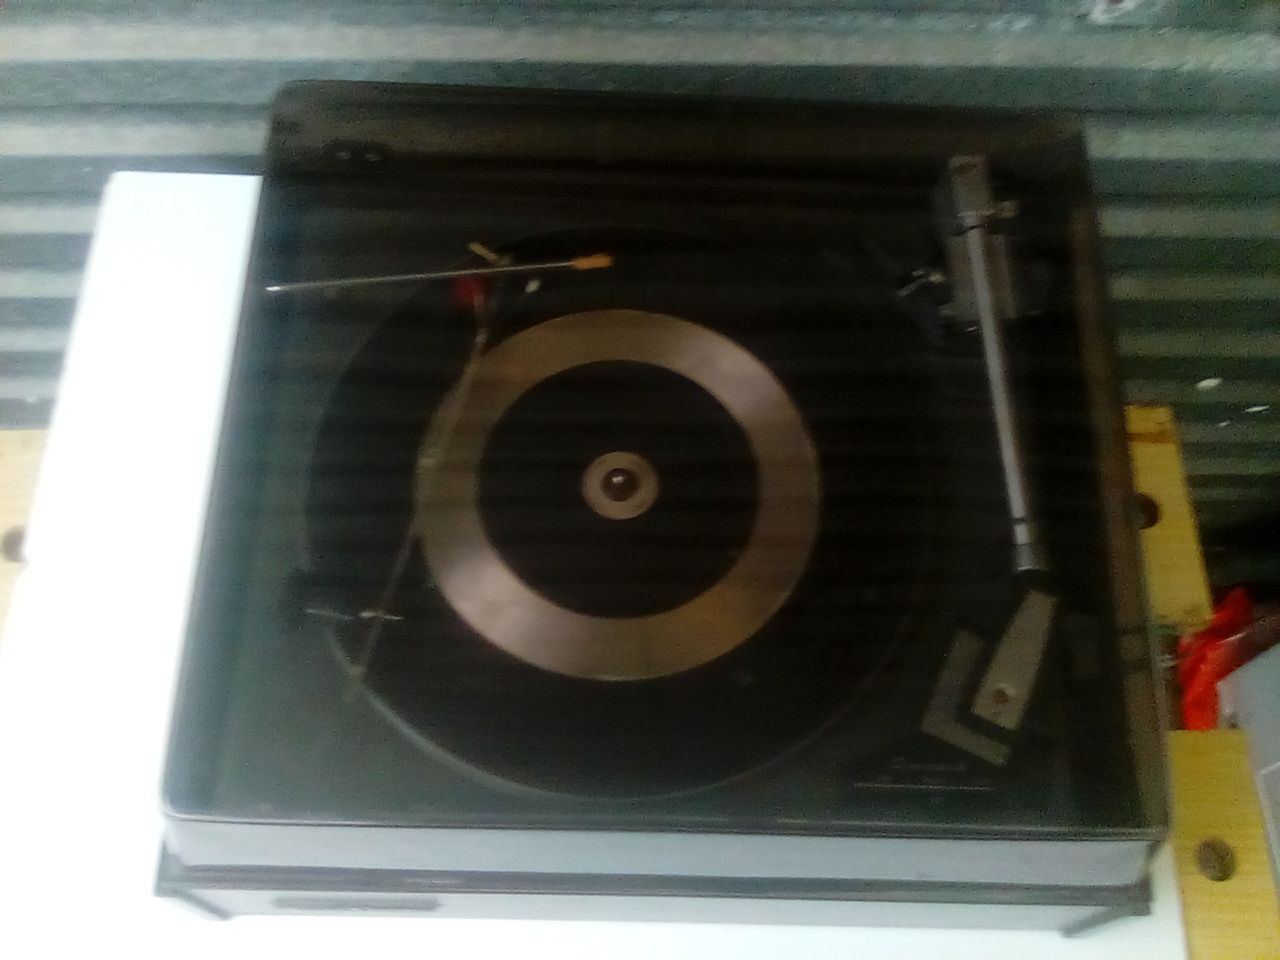 2 x Garrard mark SP 11 and SP iv turntables for repair/parts